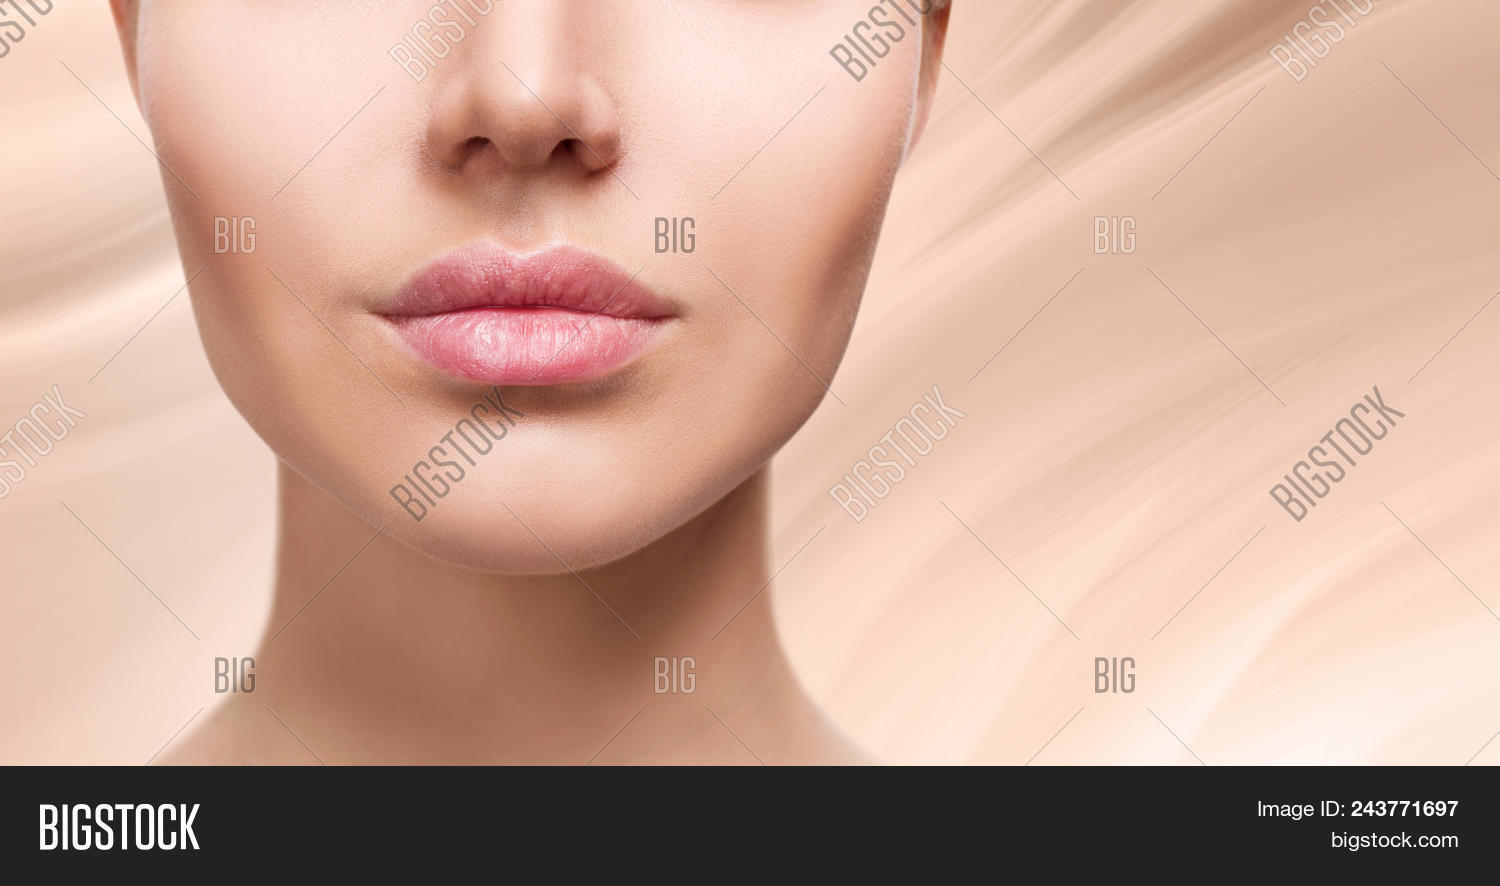 perfect natural lips image photo free trial bigstock